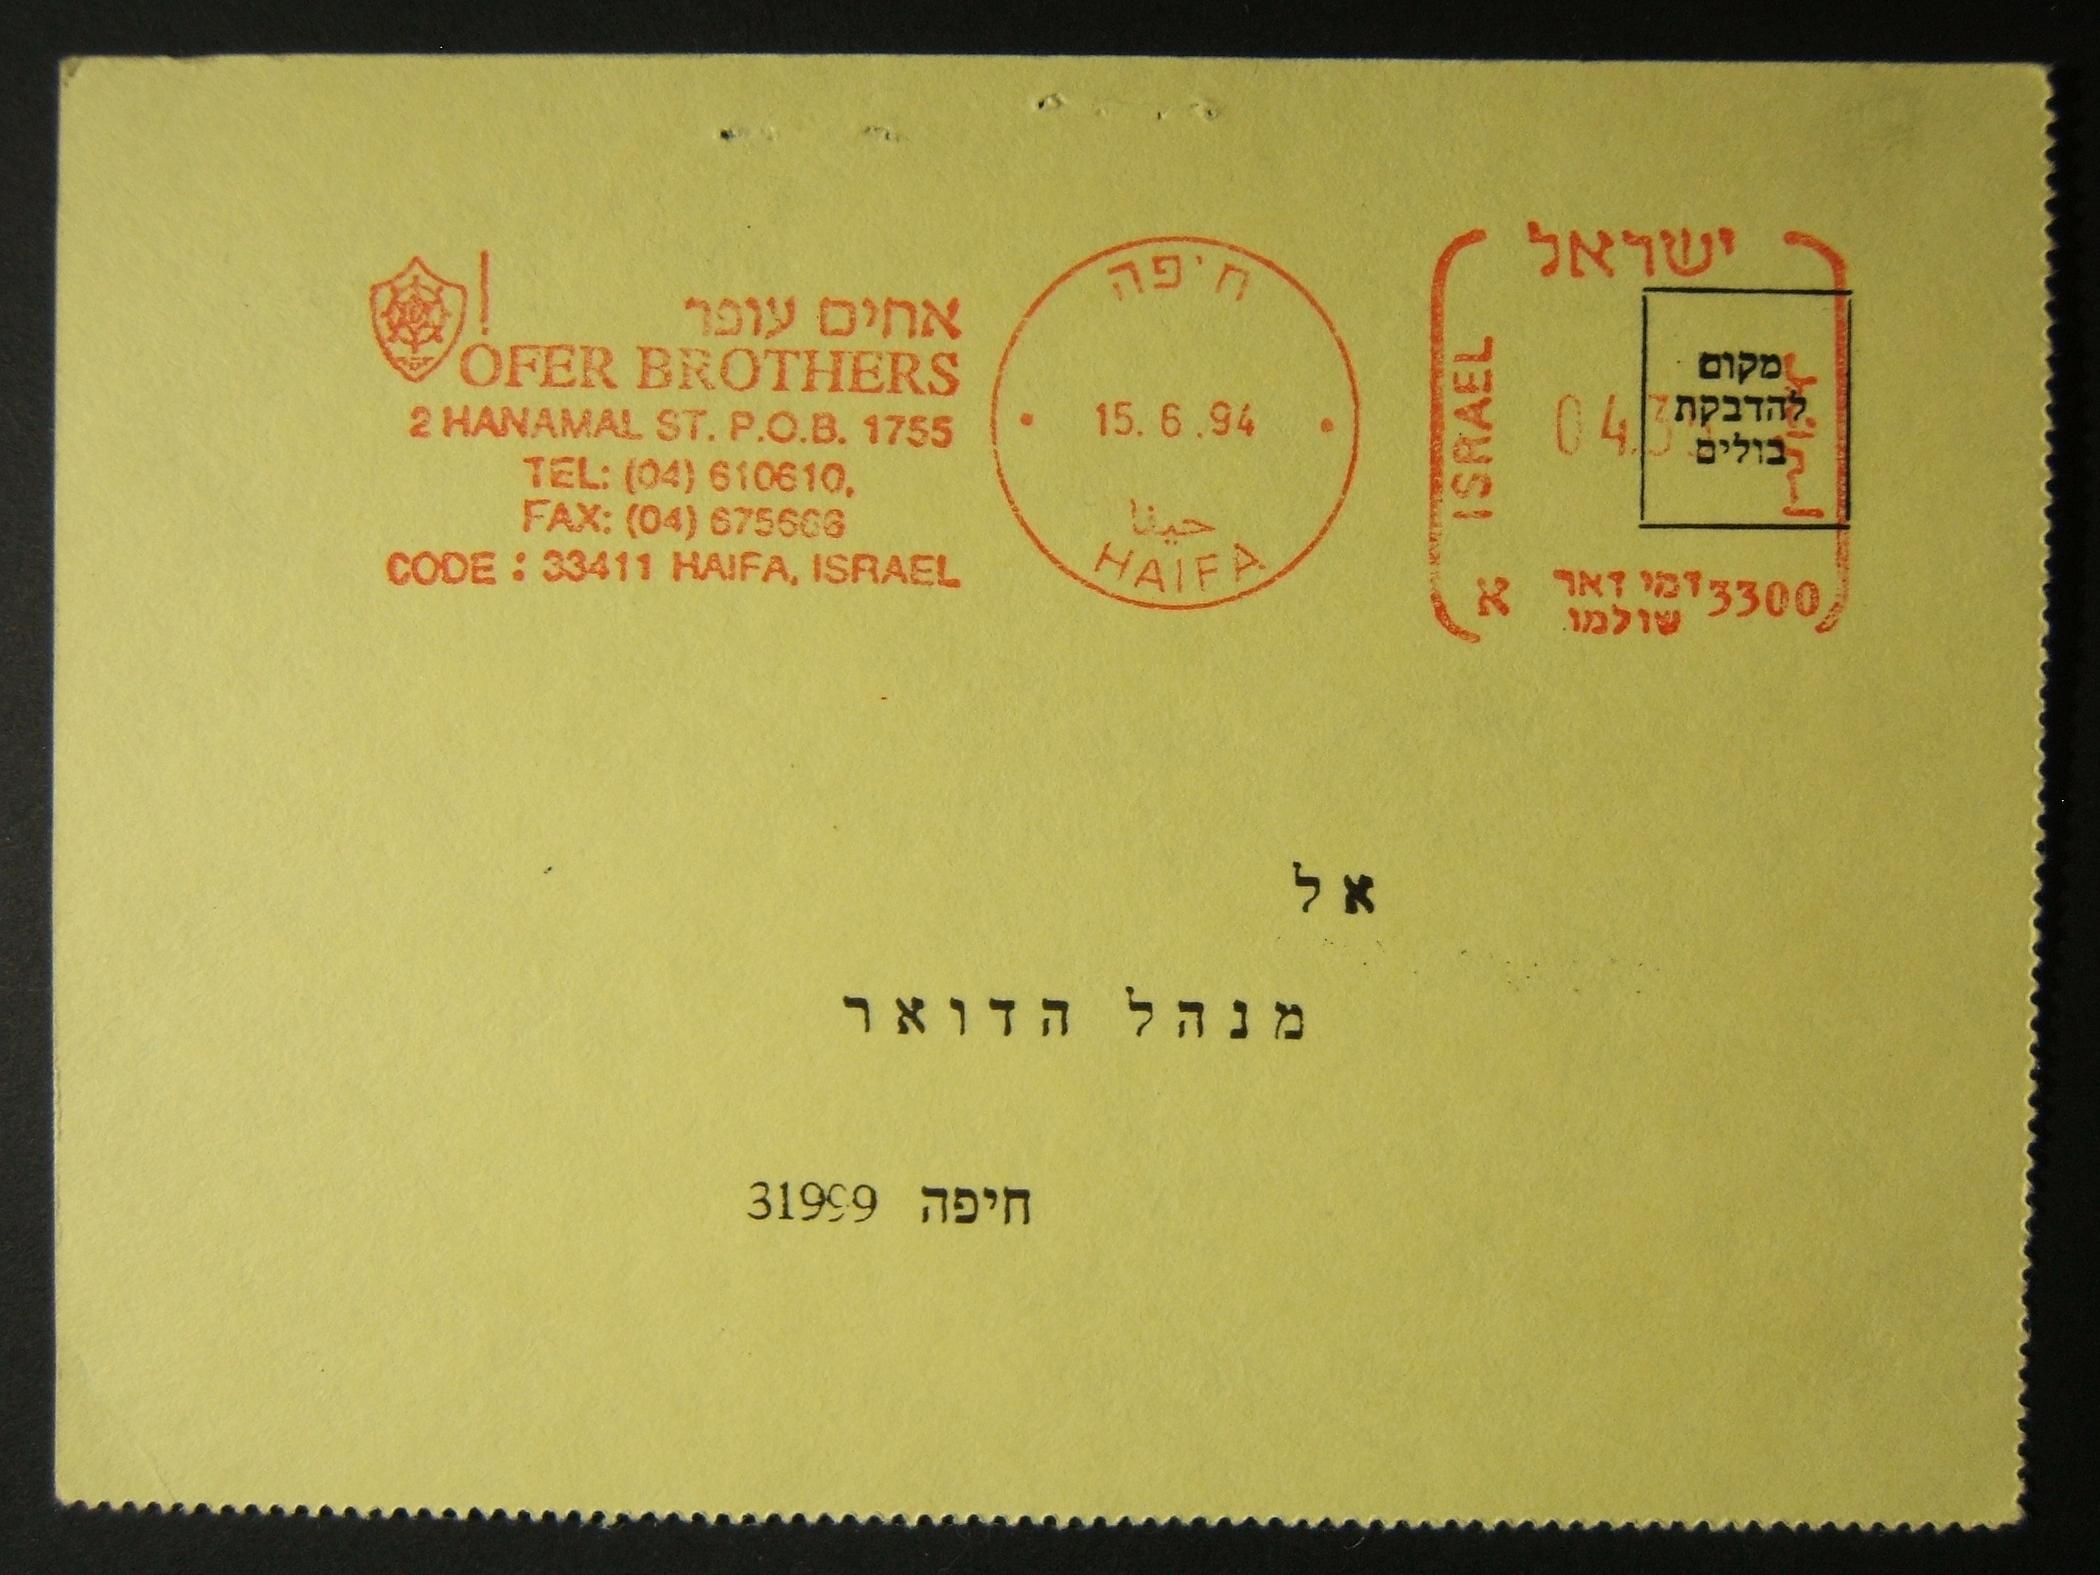 1994 incoming mail franked taxation notice: 14 JUN 1994 HE dated